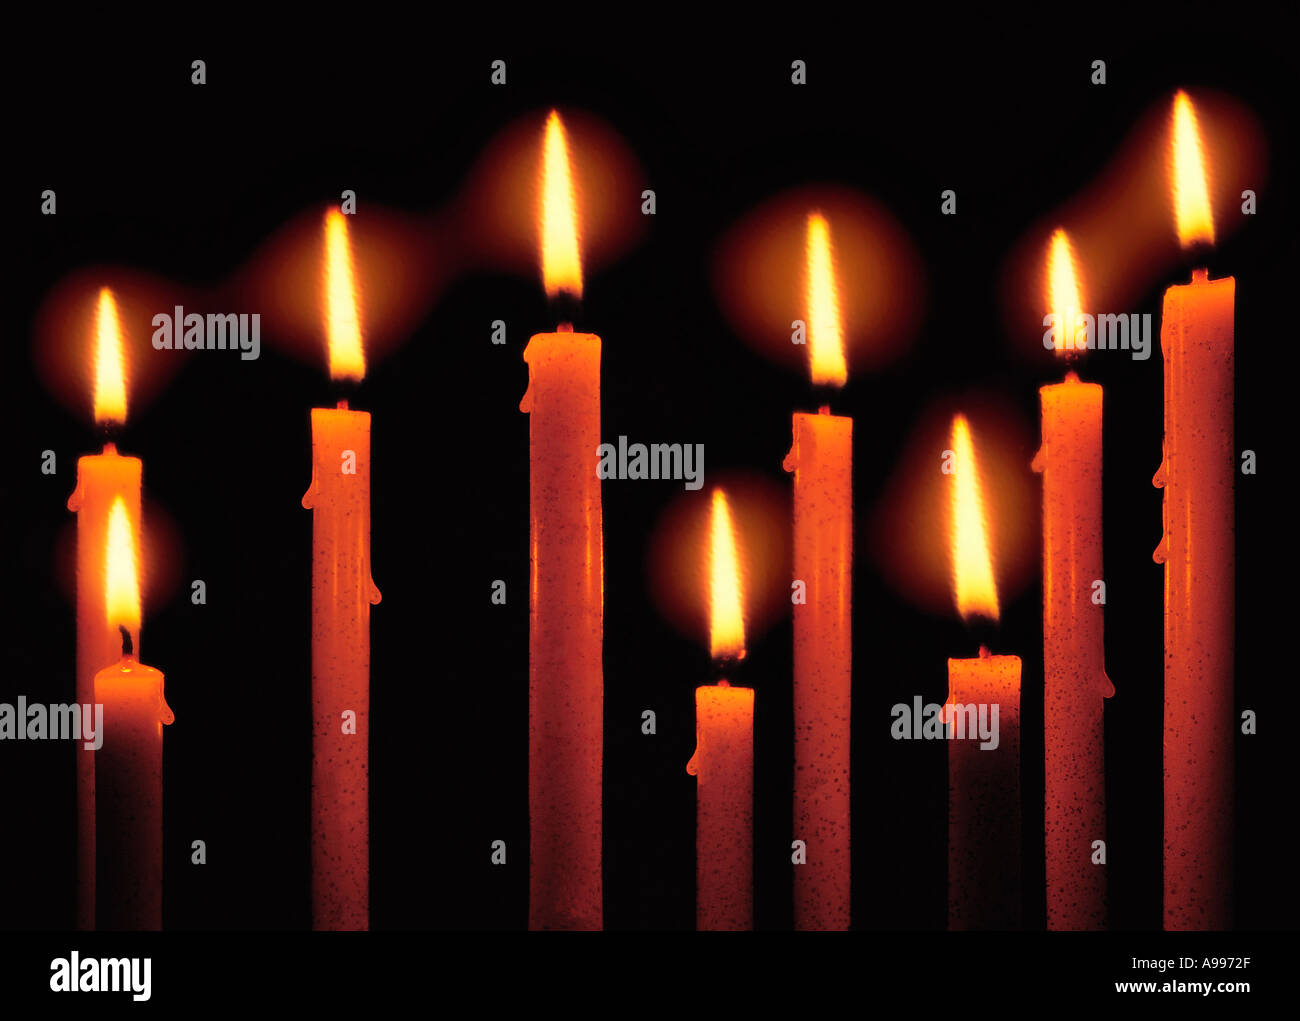 Close Up Of Nine Lit Candles Dripping Wax With A Halo Appearing ...